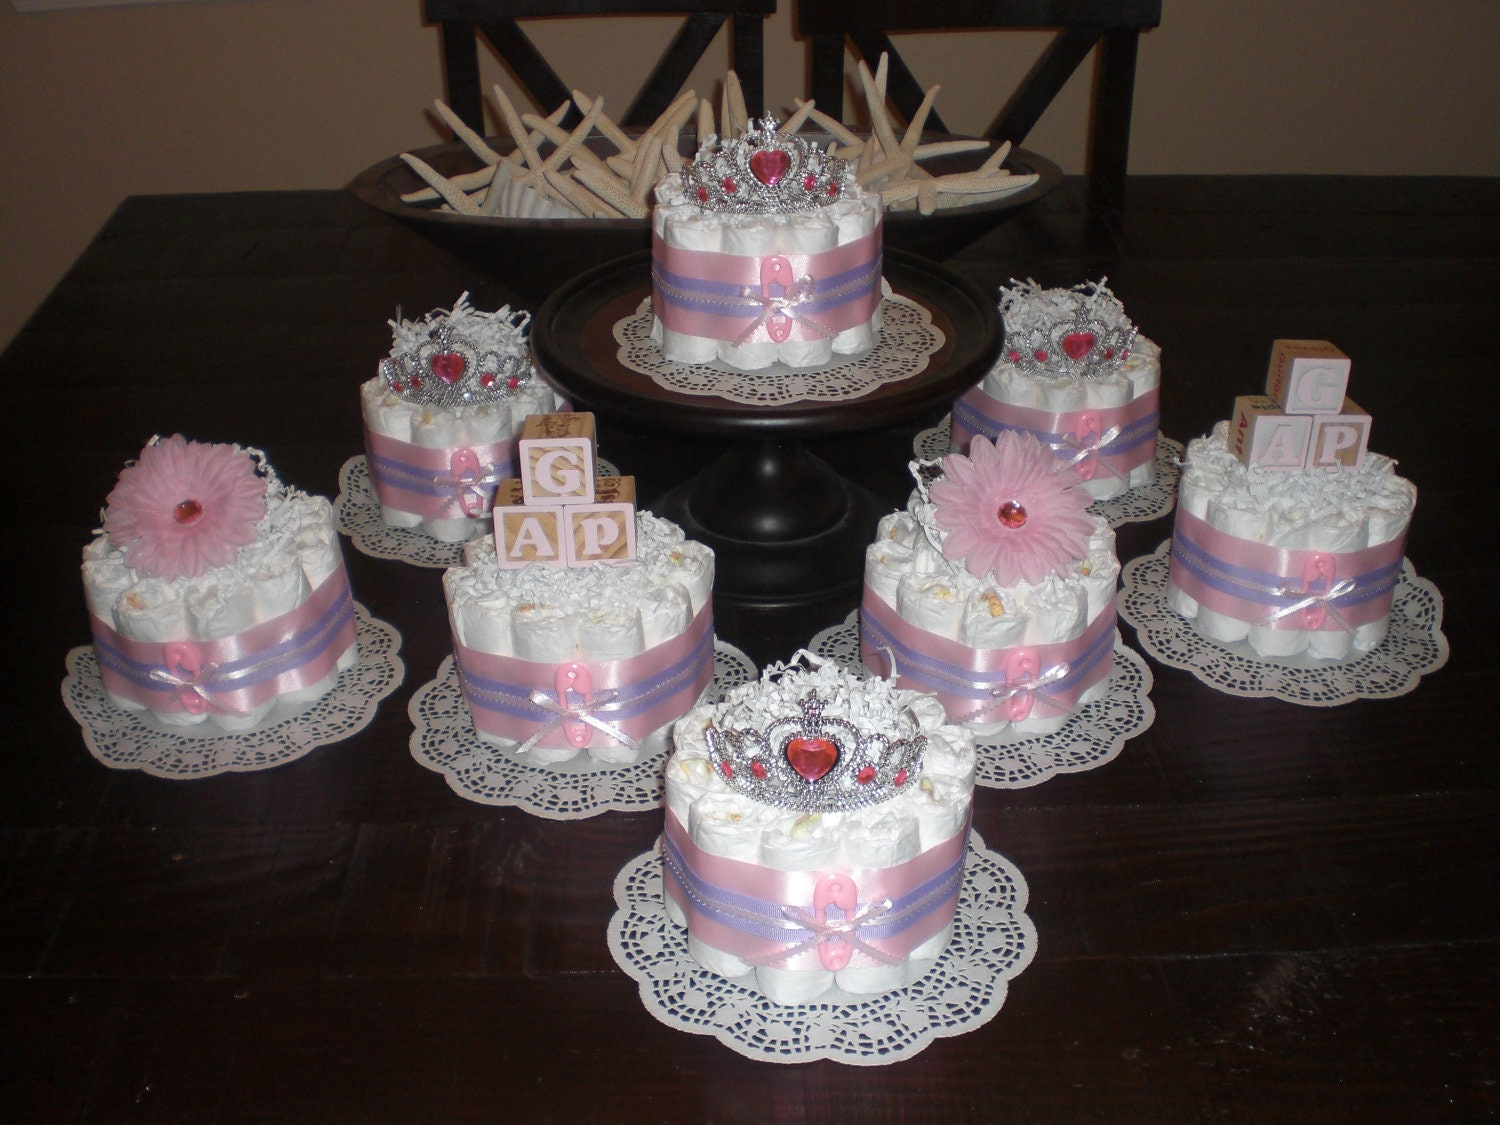 Diaper Cake Centerpiece For Baby Shower : Pink and Purple Bundt Baby Shower Centerpieces Diaper cakes